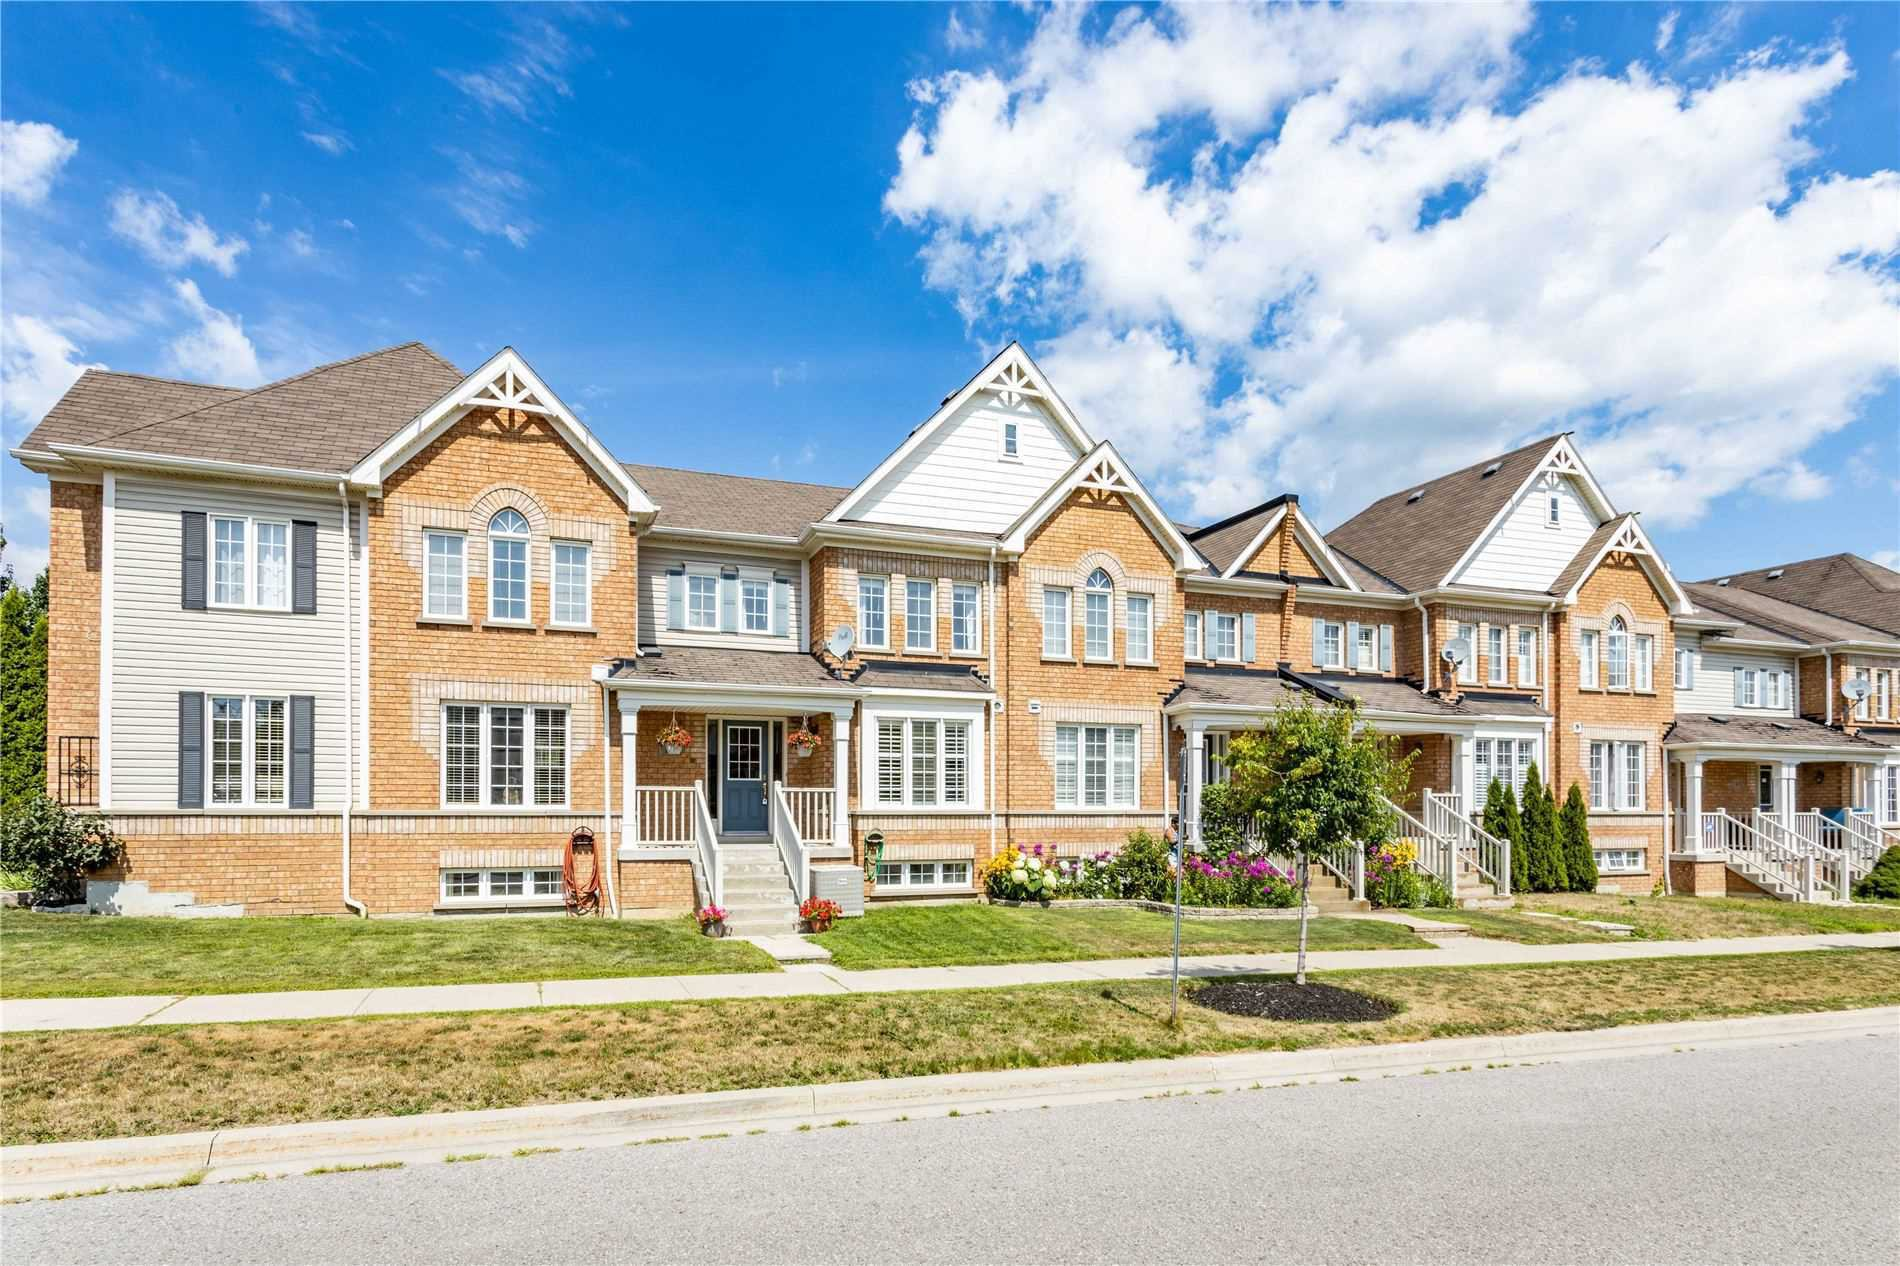 Main Photo: 12 Dollery Gate in Ajax: Northeast Ajax House (2-Storey) for sale : MLS®# E4871558